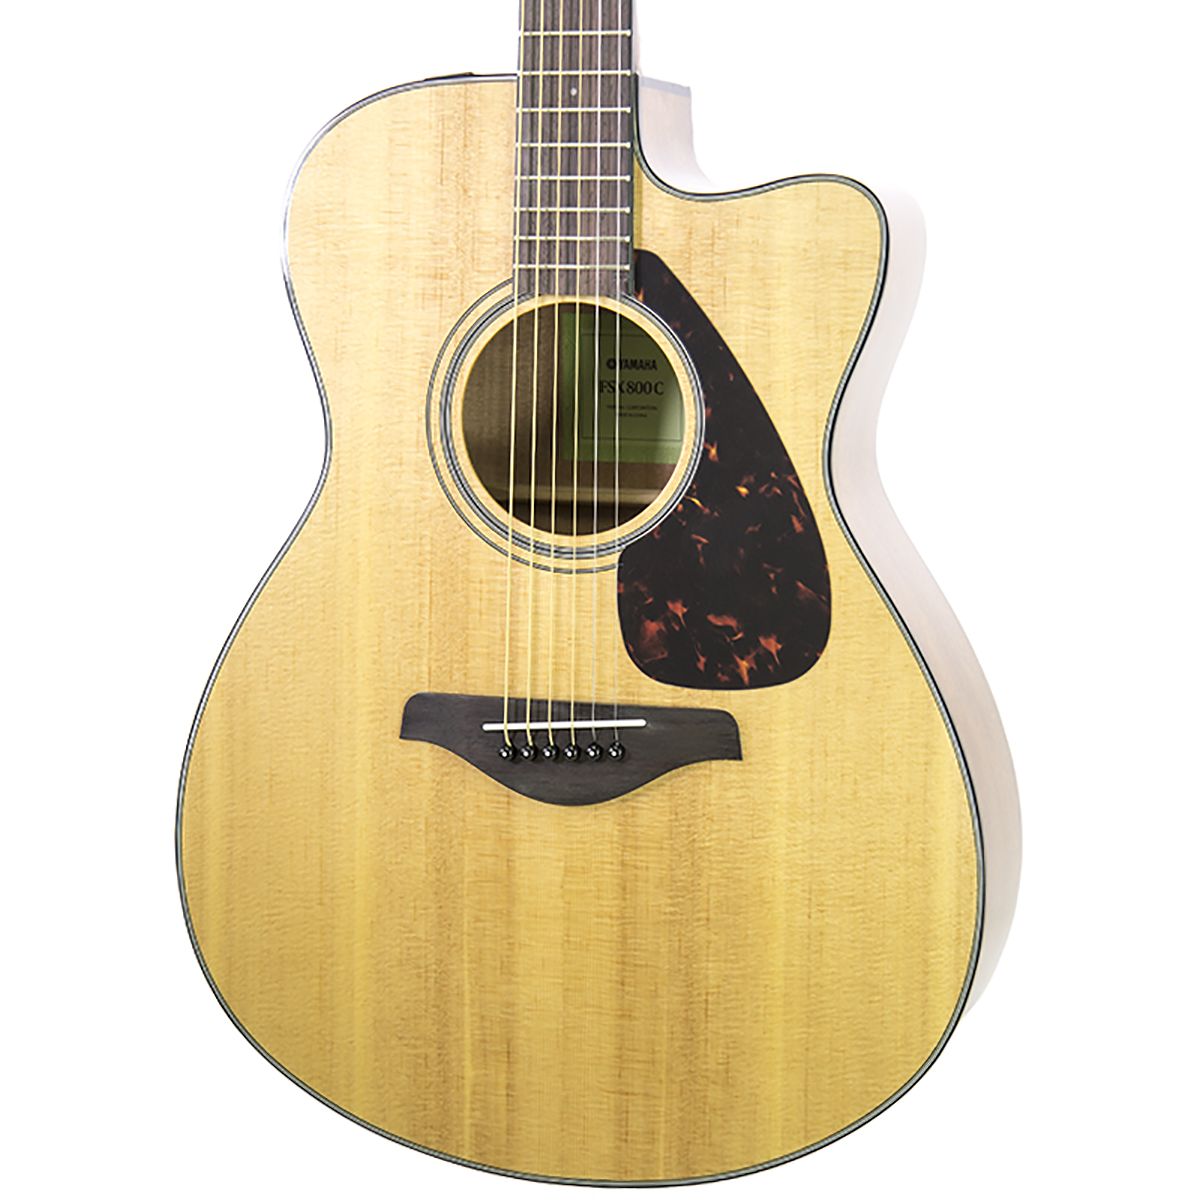 brand new yamaha fsx800c natural acoustic electric guitar new york music emporium. Black Bedroom Furniture Sets. Home Design Ideas